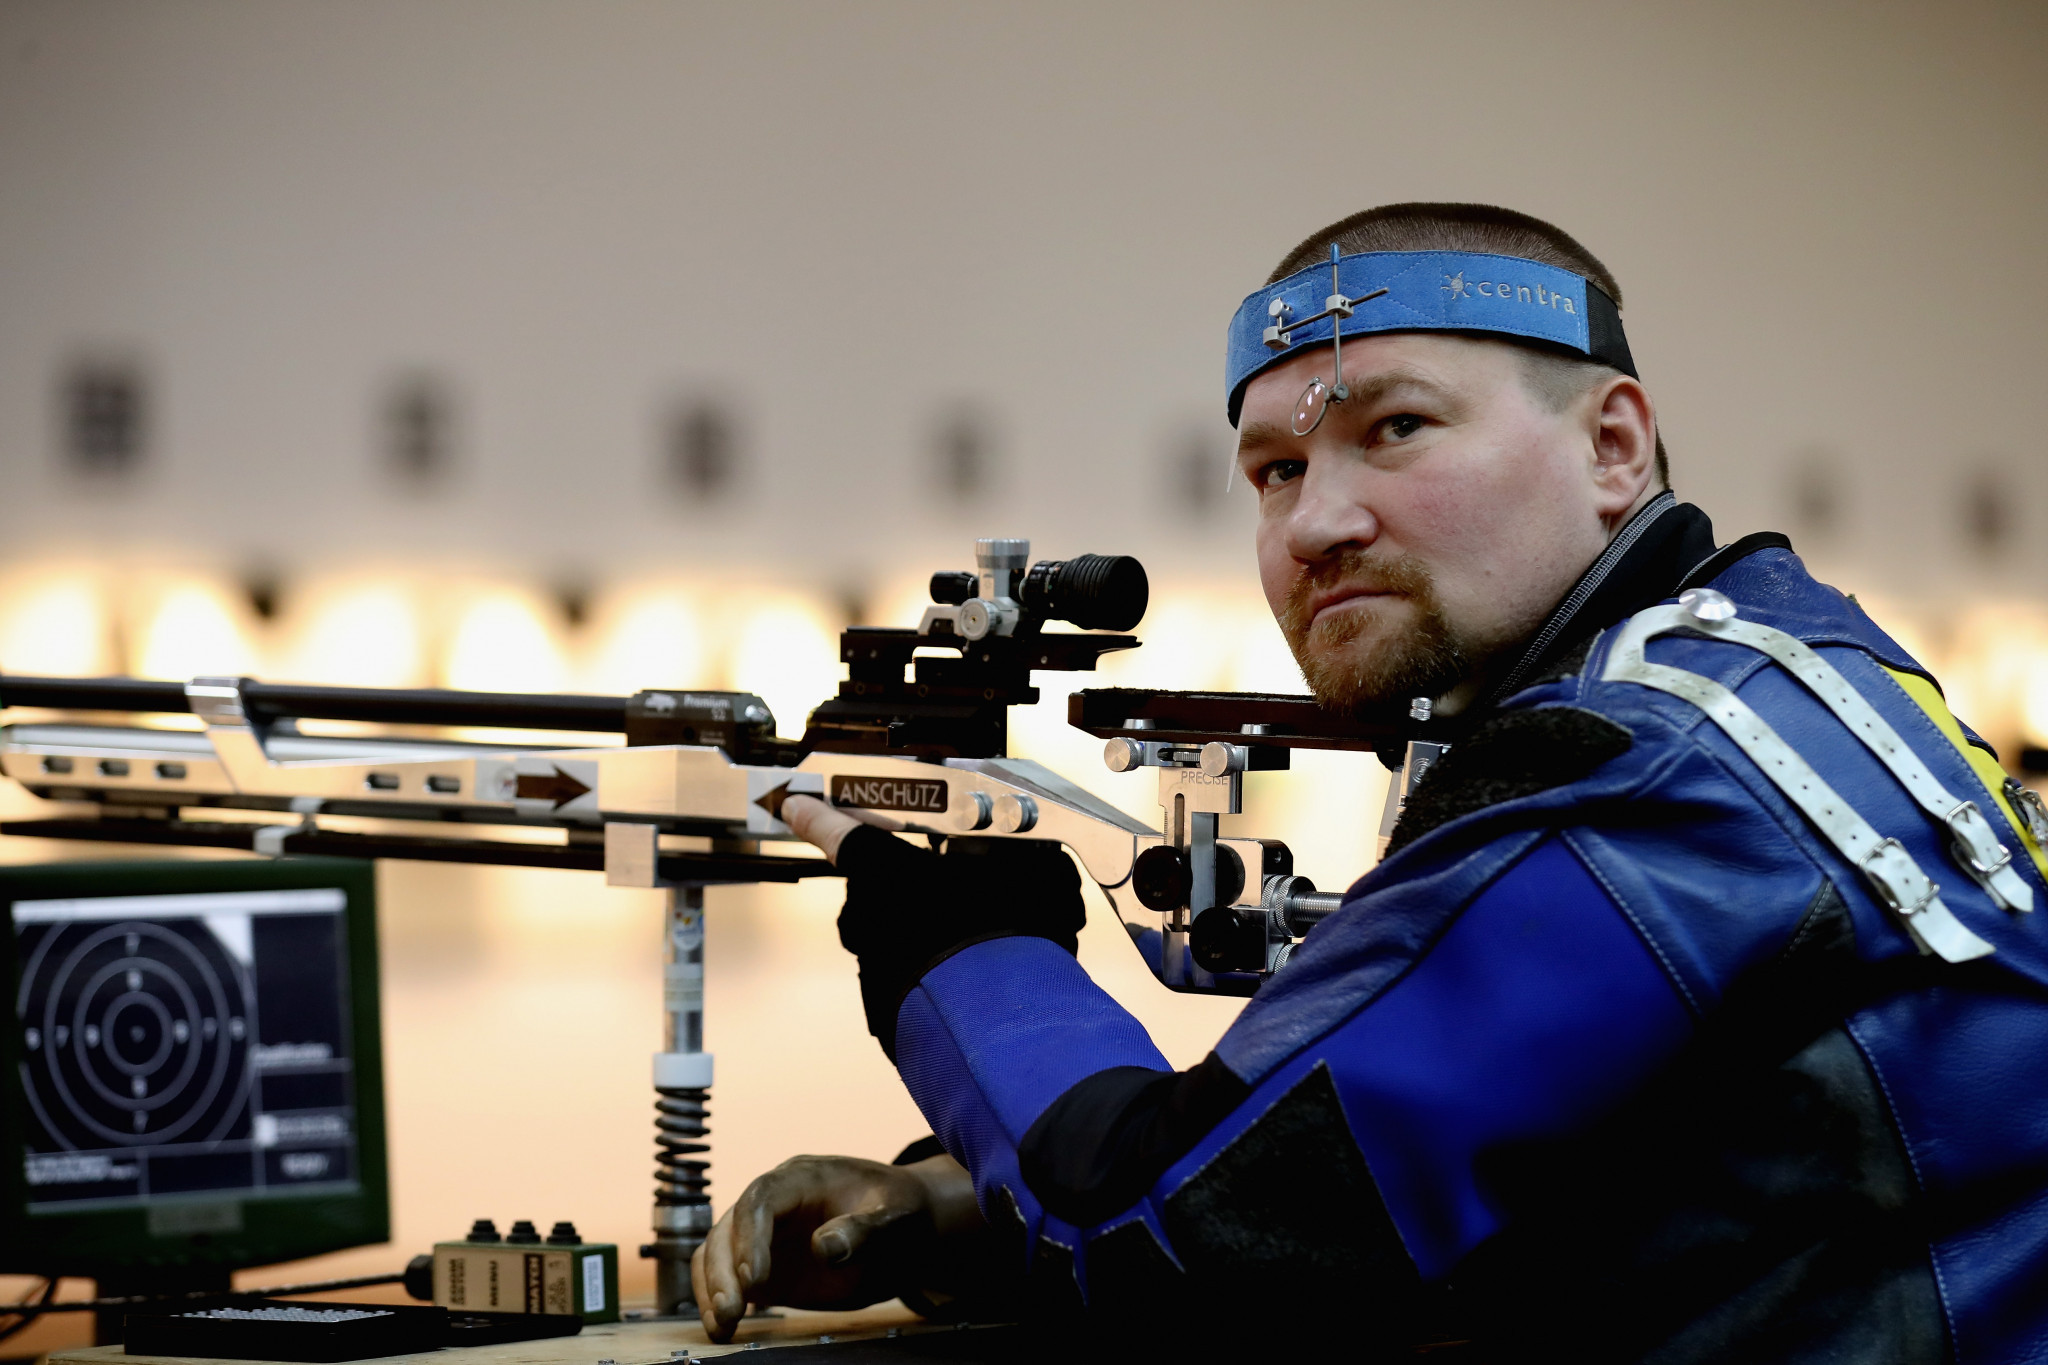 Lima World Shooting Para Sport World Cup last qualifier for Tokyo 2020